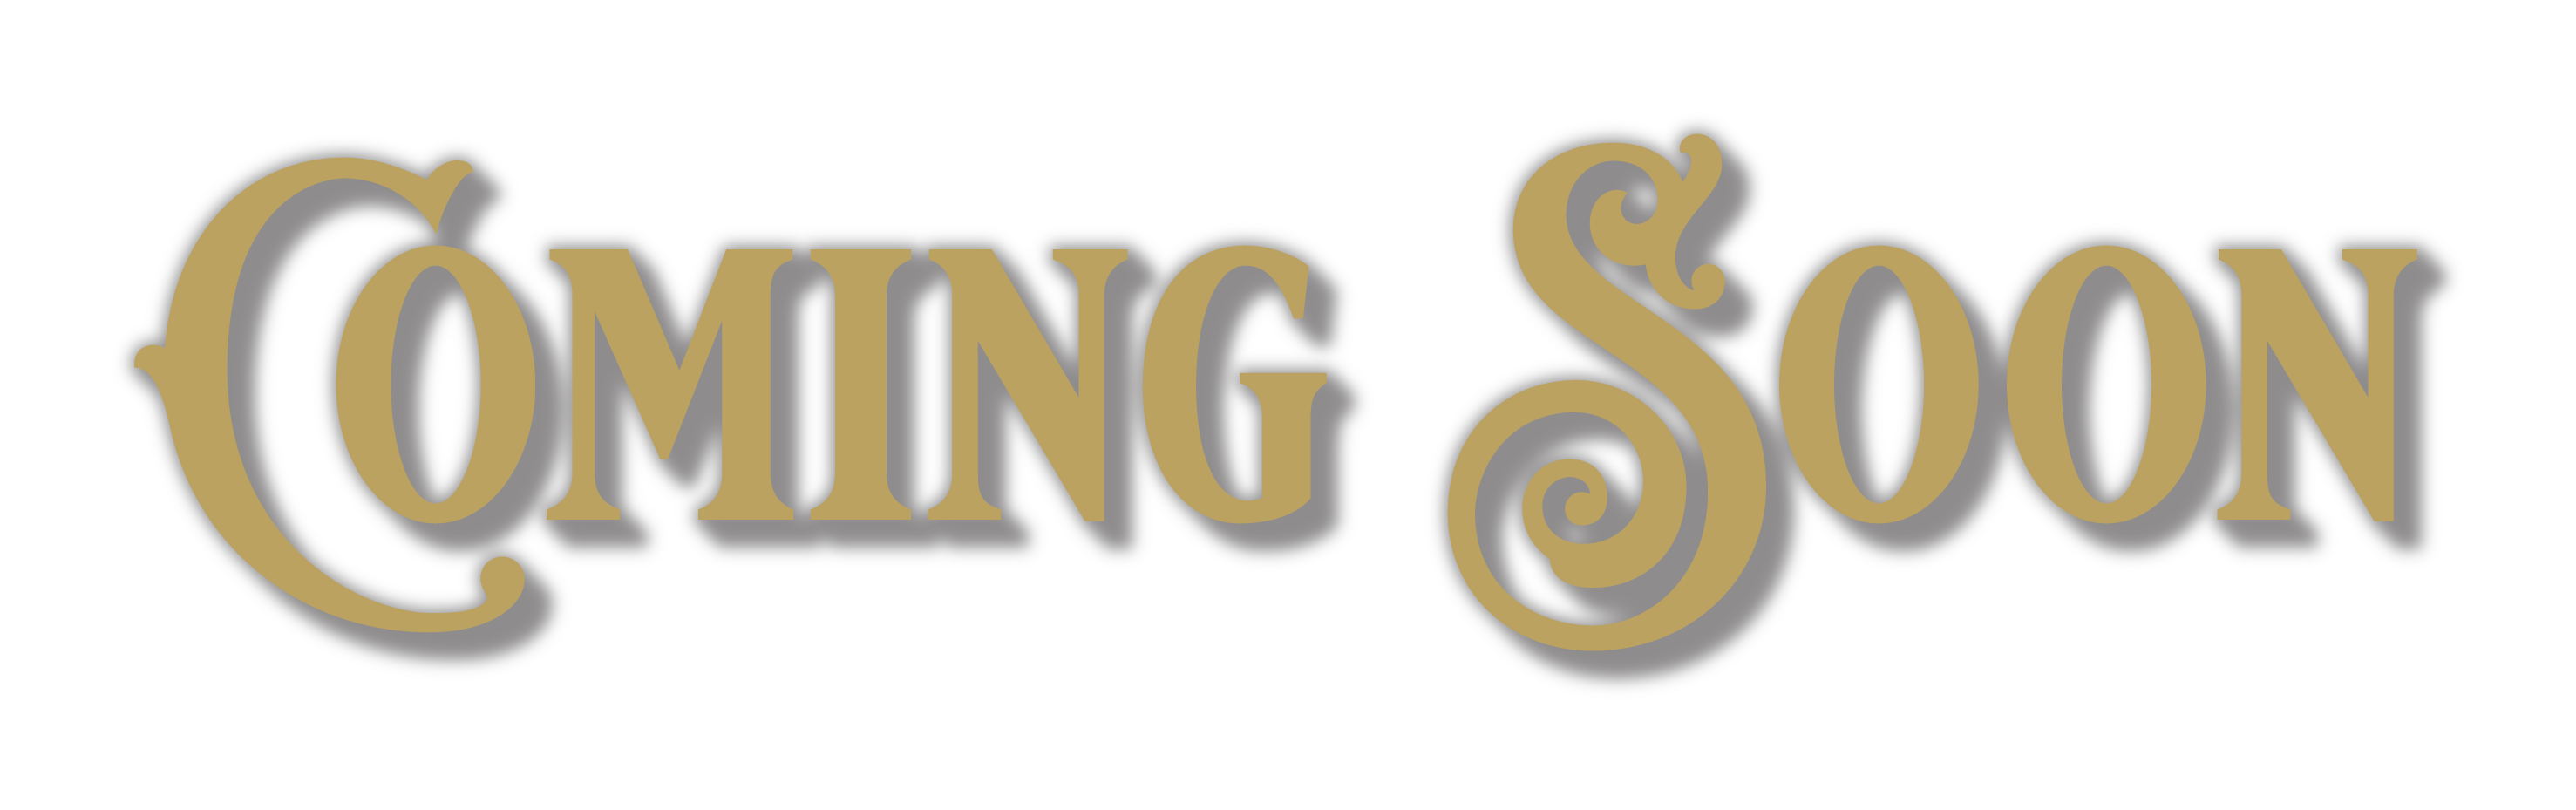 Coming Soon lettering